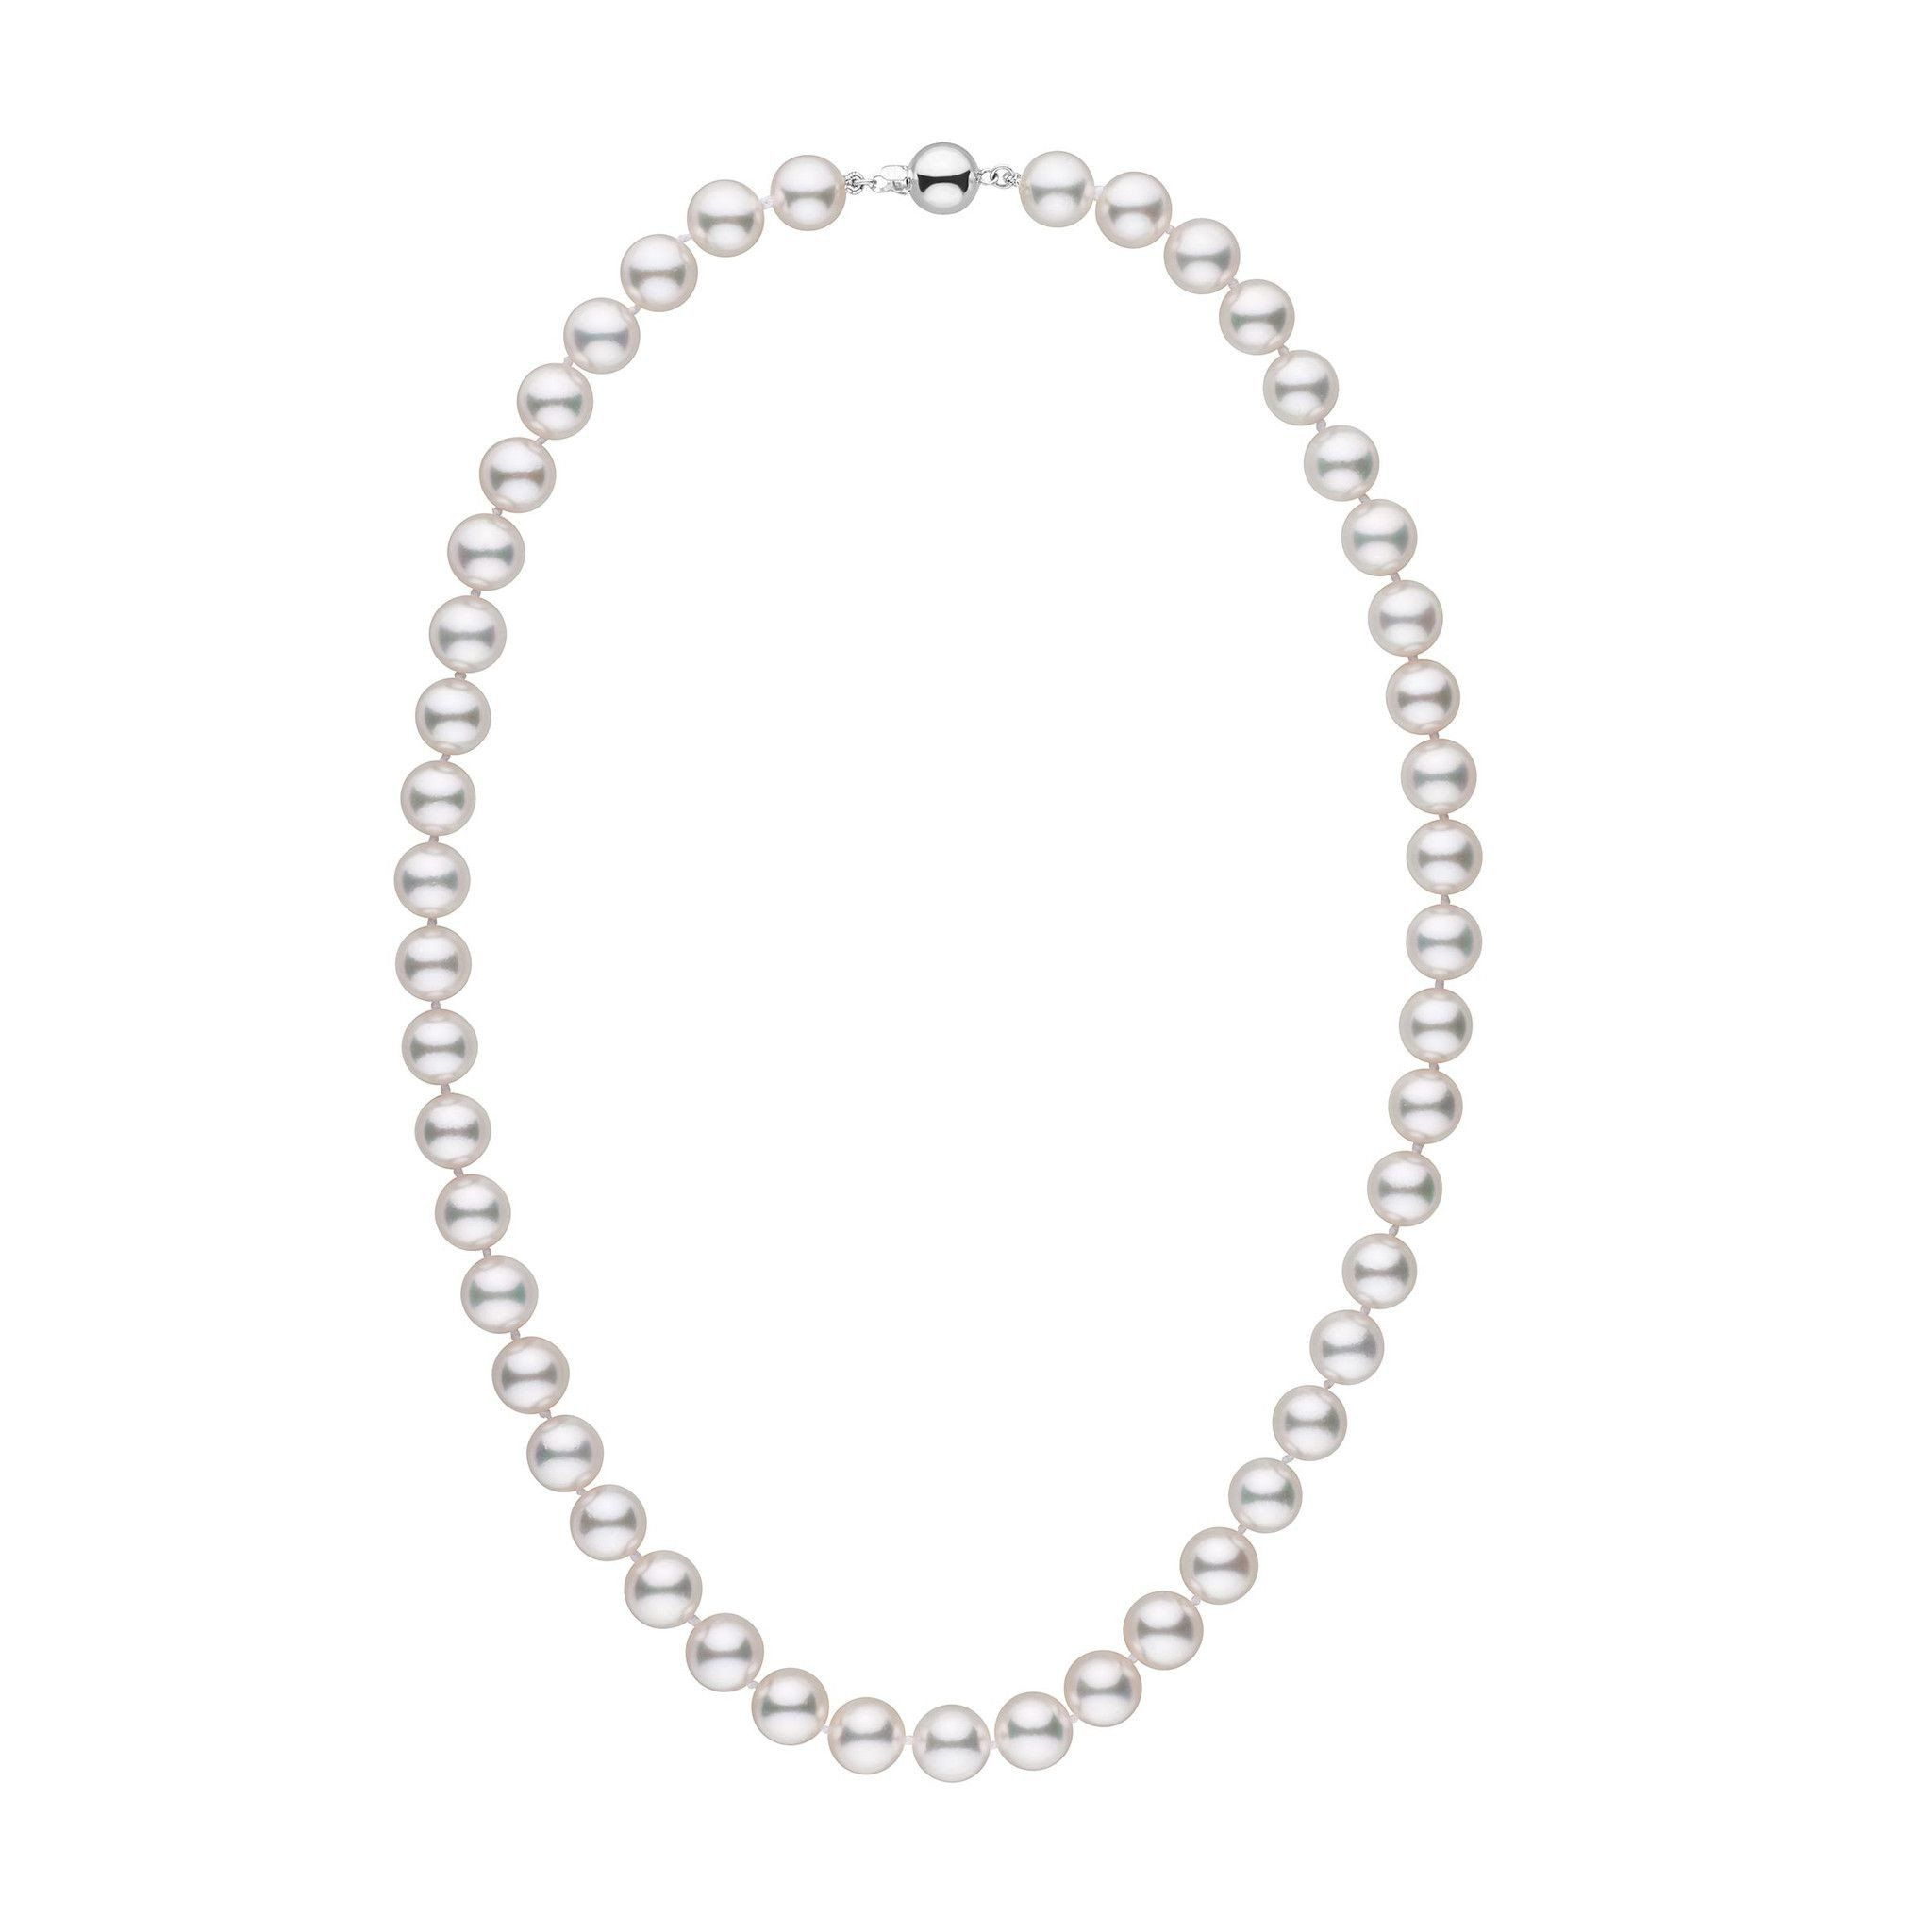 8.5-9.0 mm 18 inch AAA White Akoya Pearl Necklace